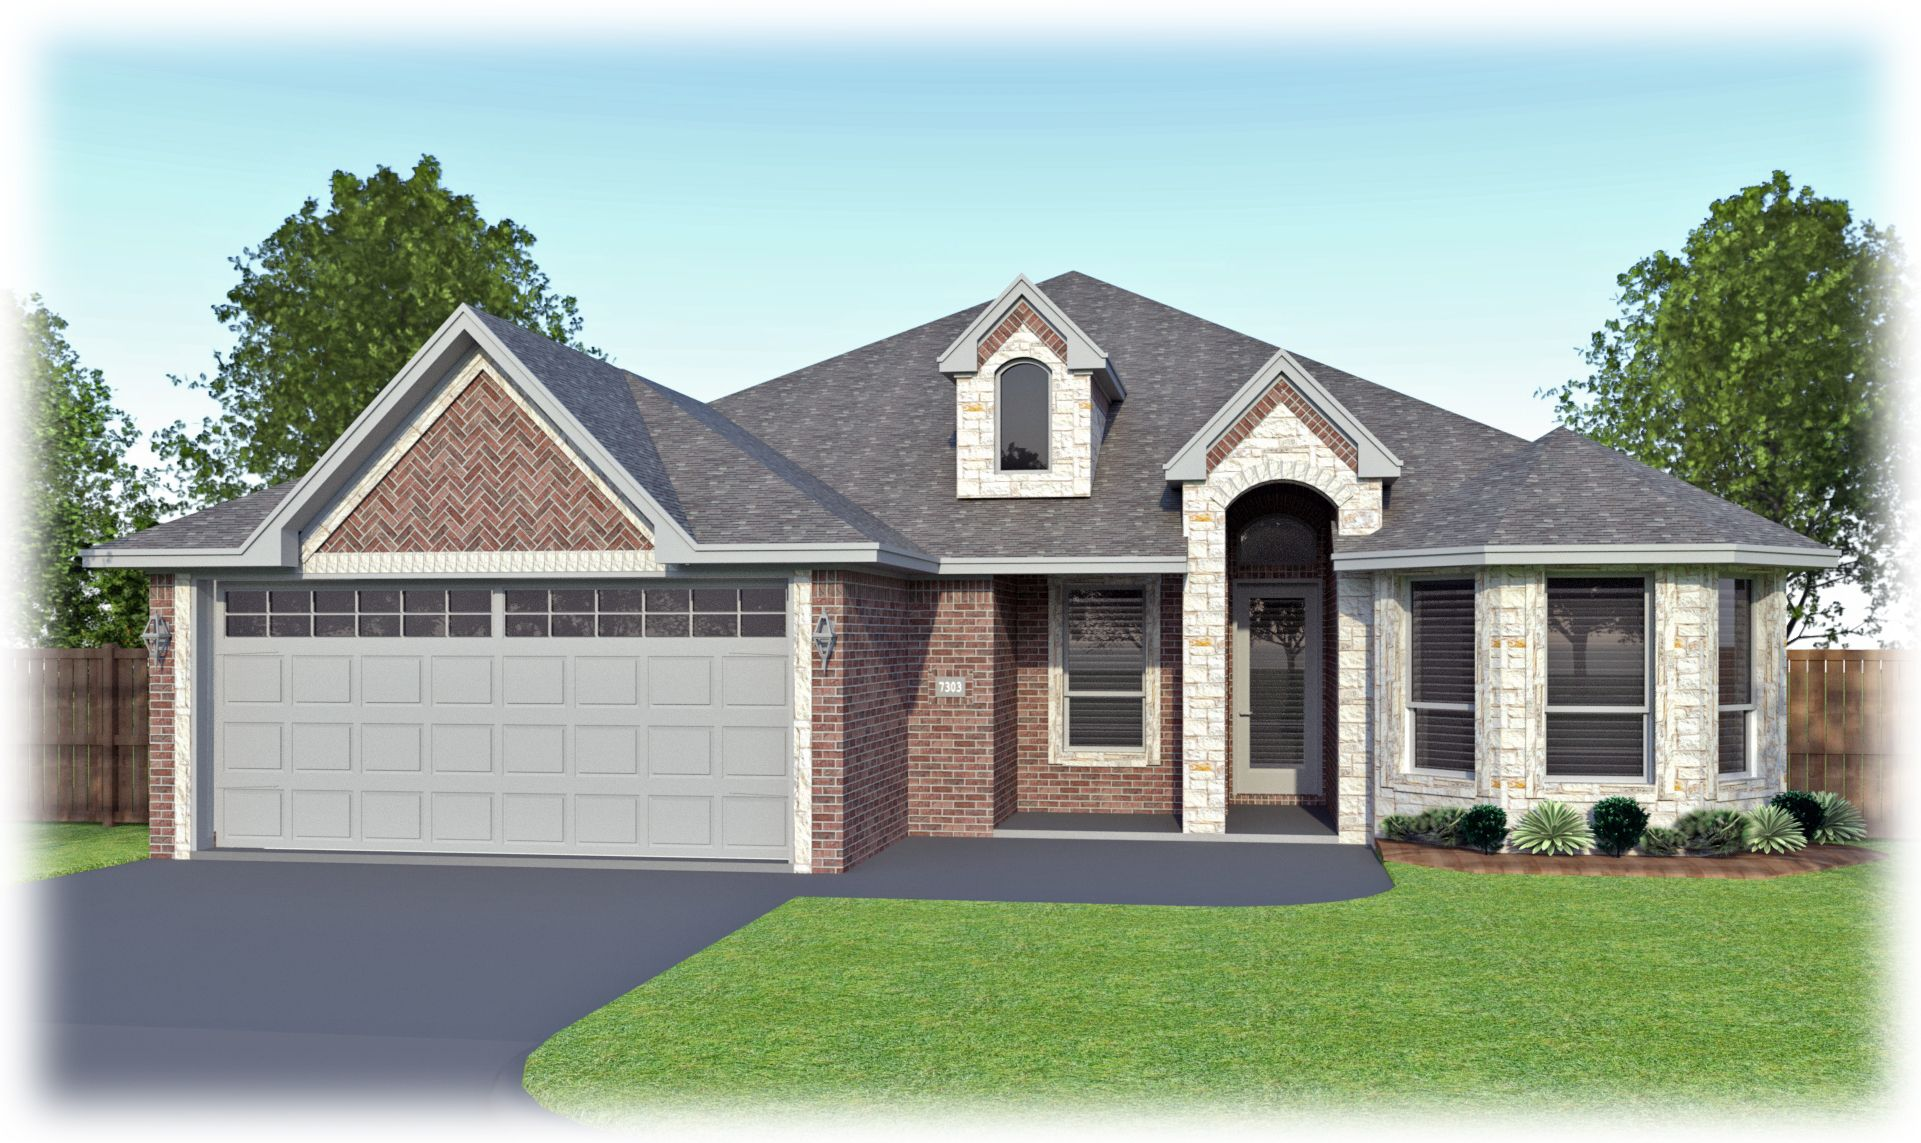 This Erminia B By Permian Homes Features Stone On The Dormer Bay Window And Entrance And Accents Of Stone Around The Ga Model Homes House Styles House Colors